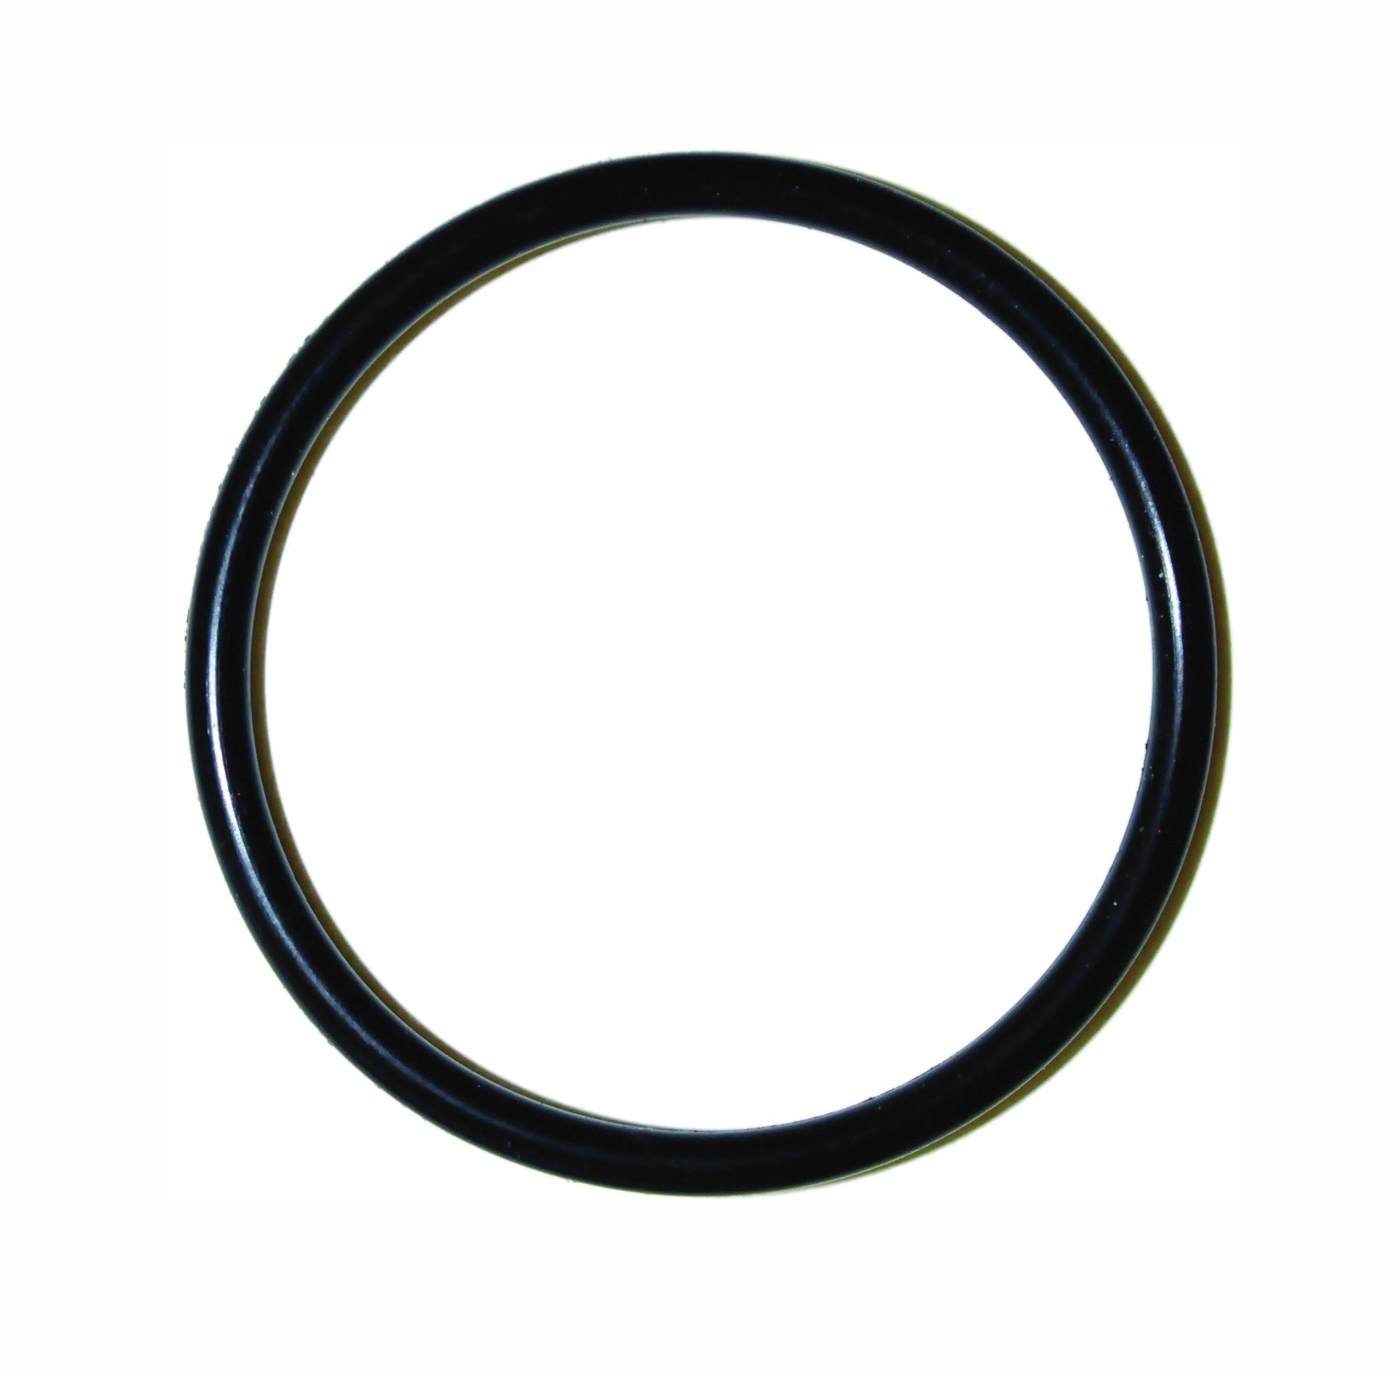 Picture of Danco 35713B Faucet O-Ring, #81, 1 in ID x 1-1/8 in OD Dia, 1/16 in Thick, Buna-N, For: Symmons, Woodford Faucets